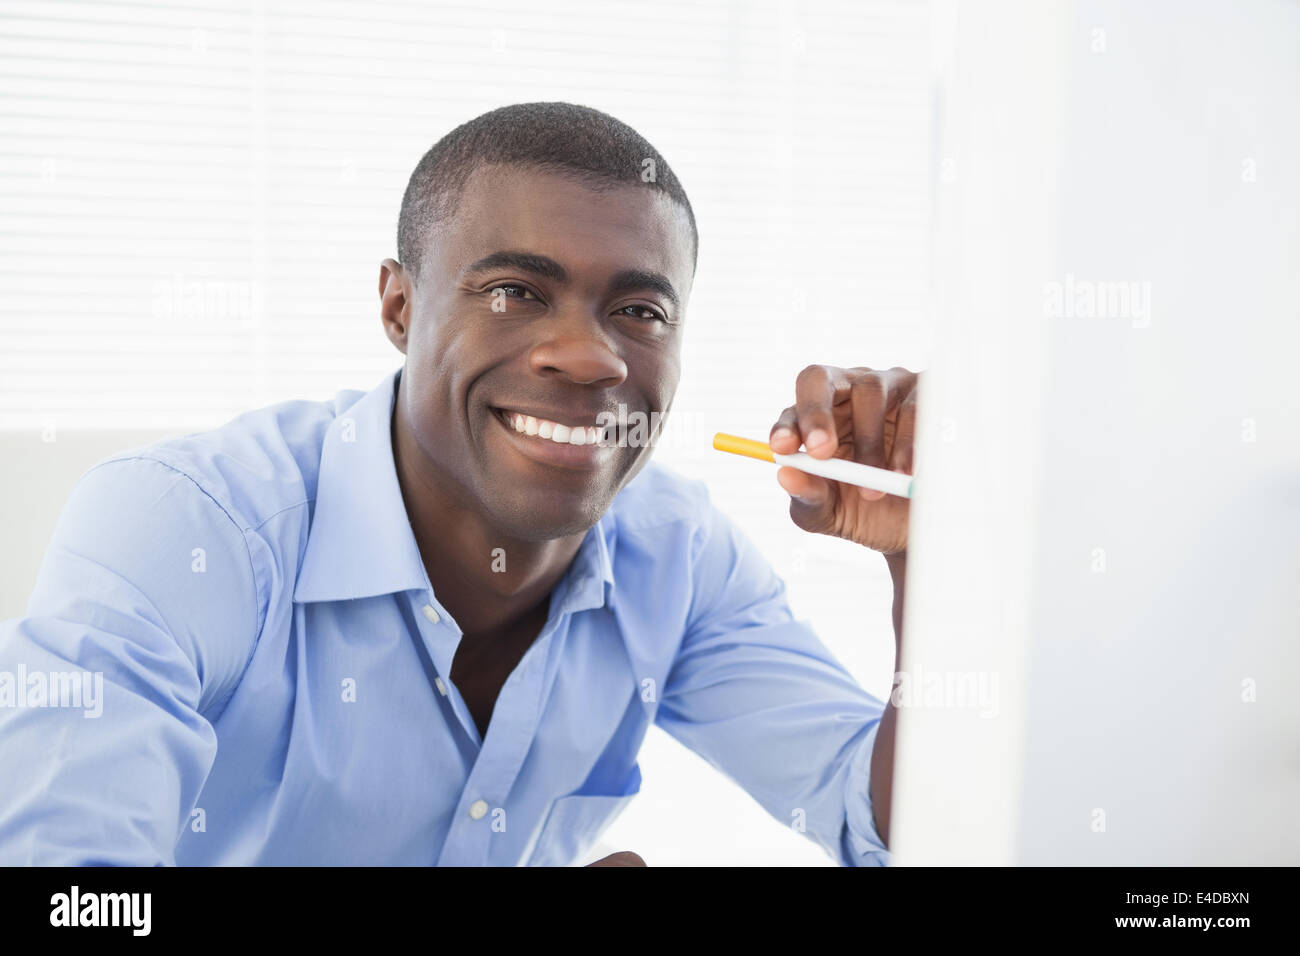 Happy businessman with electronic cigarette - Stock Image